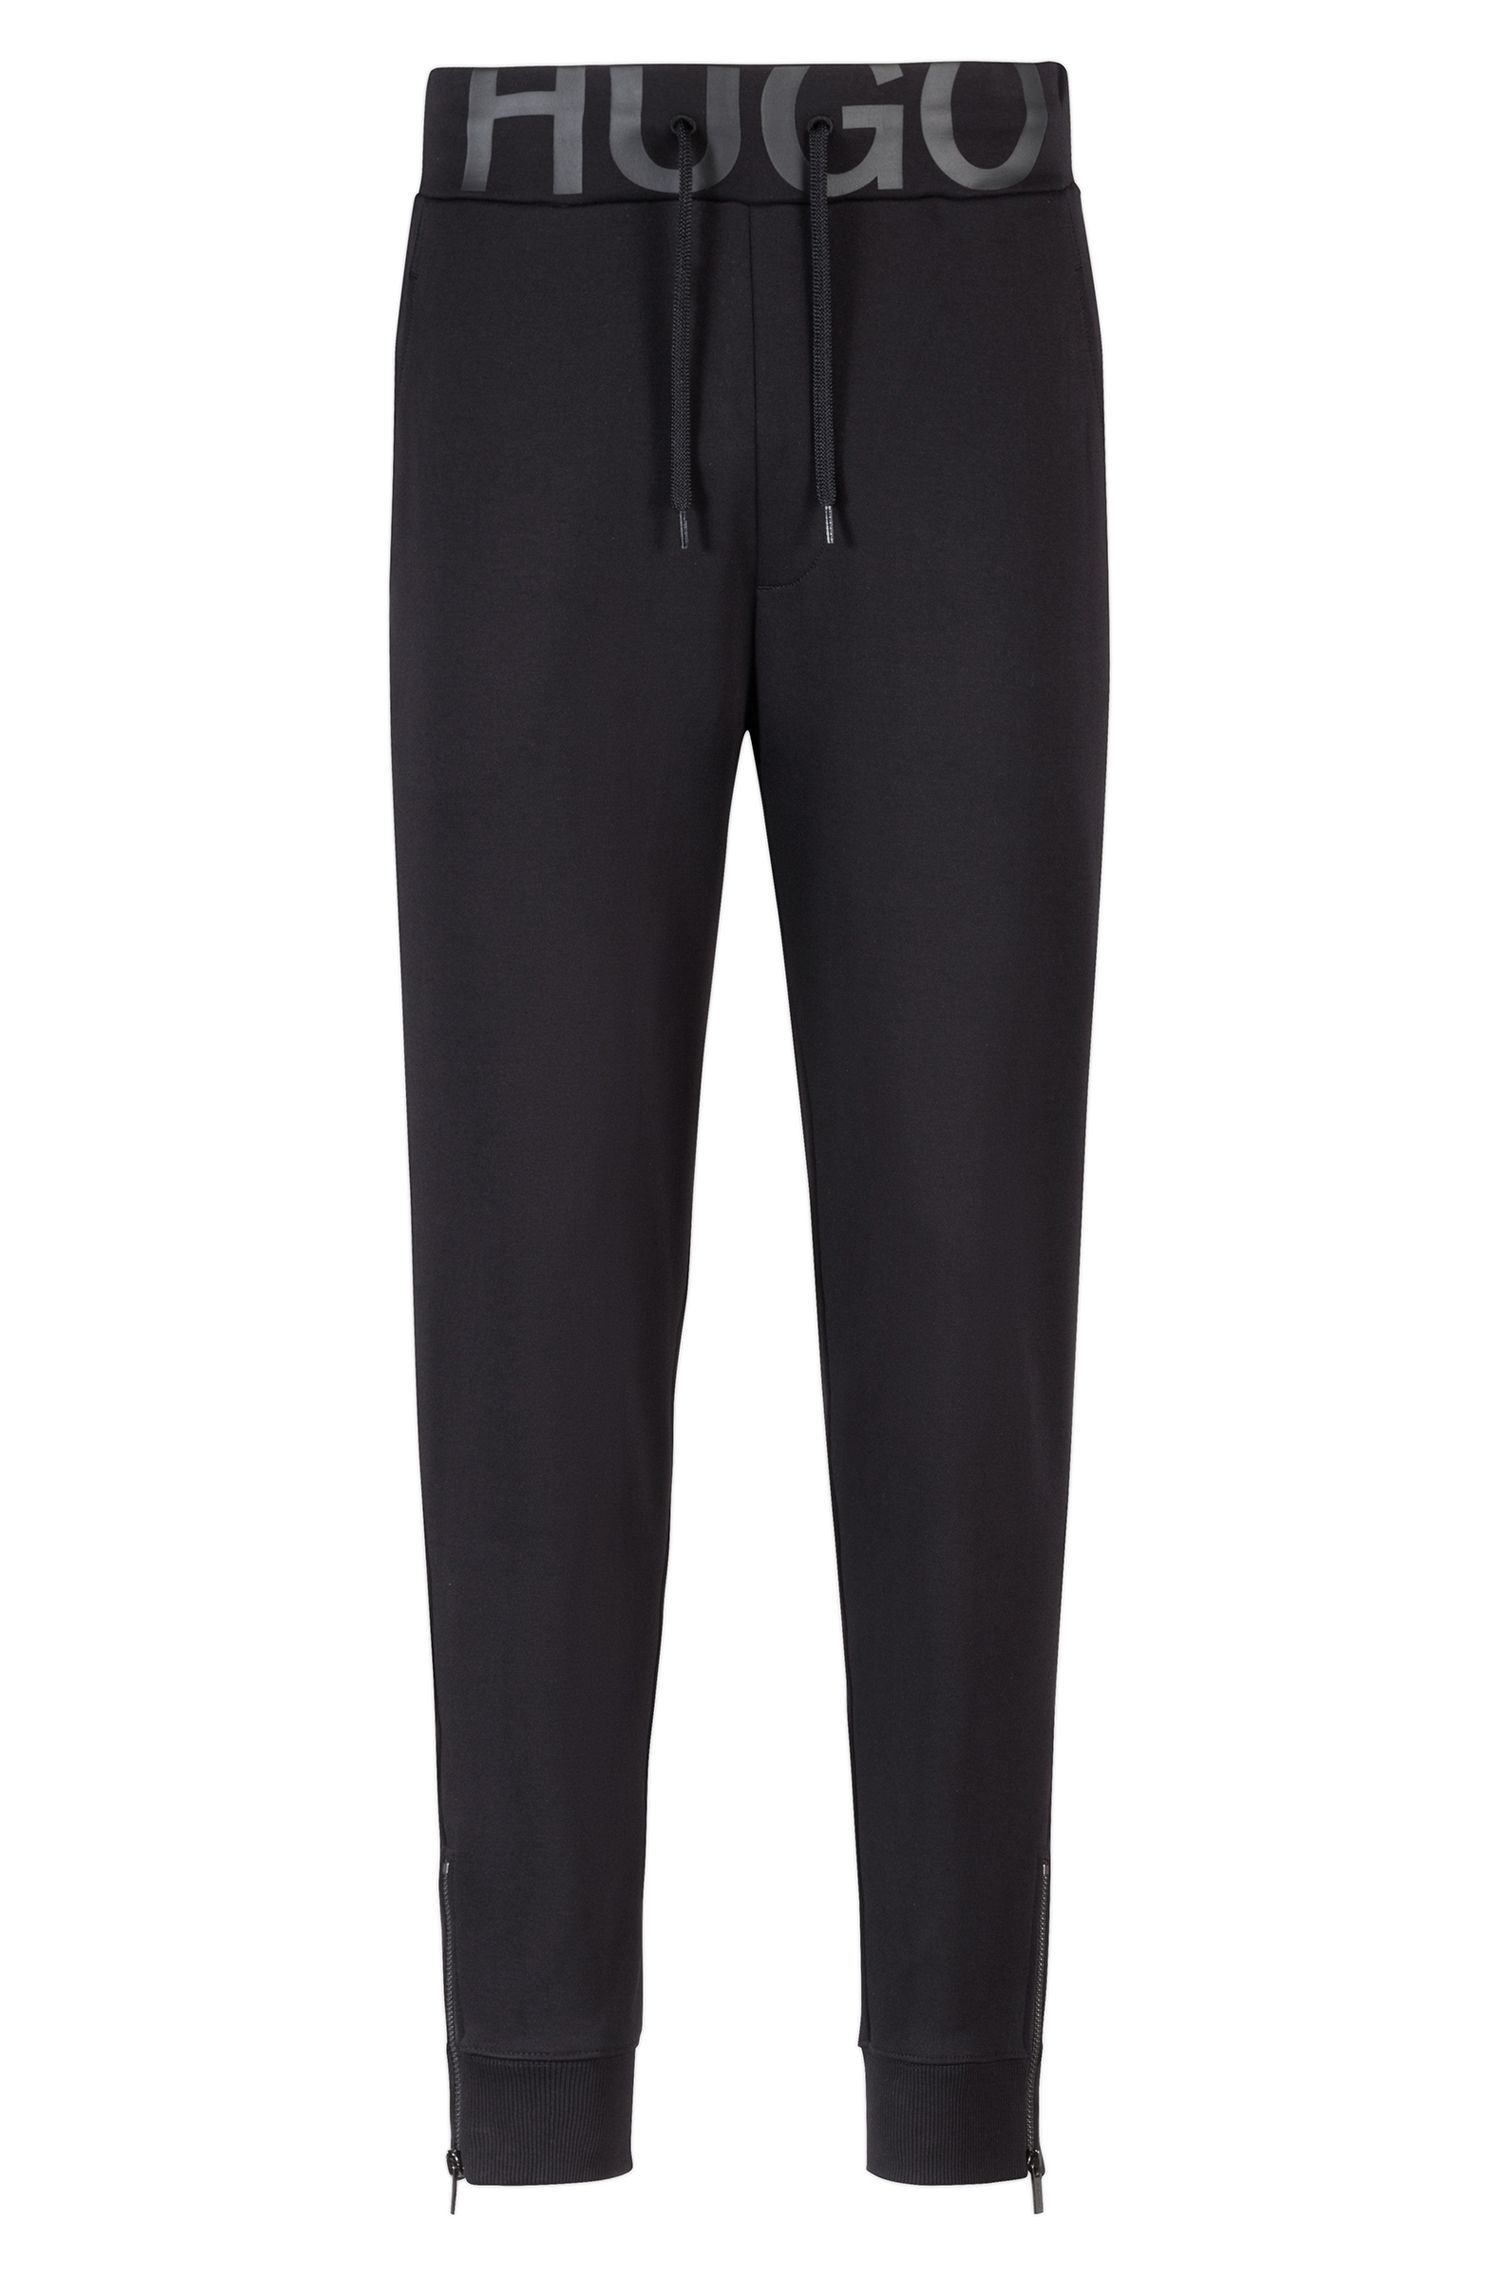 Zip-cuff trousers in cotton jersey with logo waistband